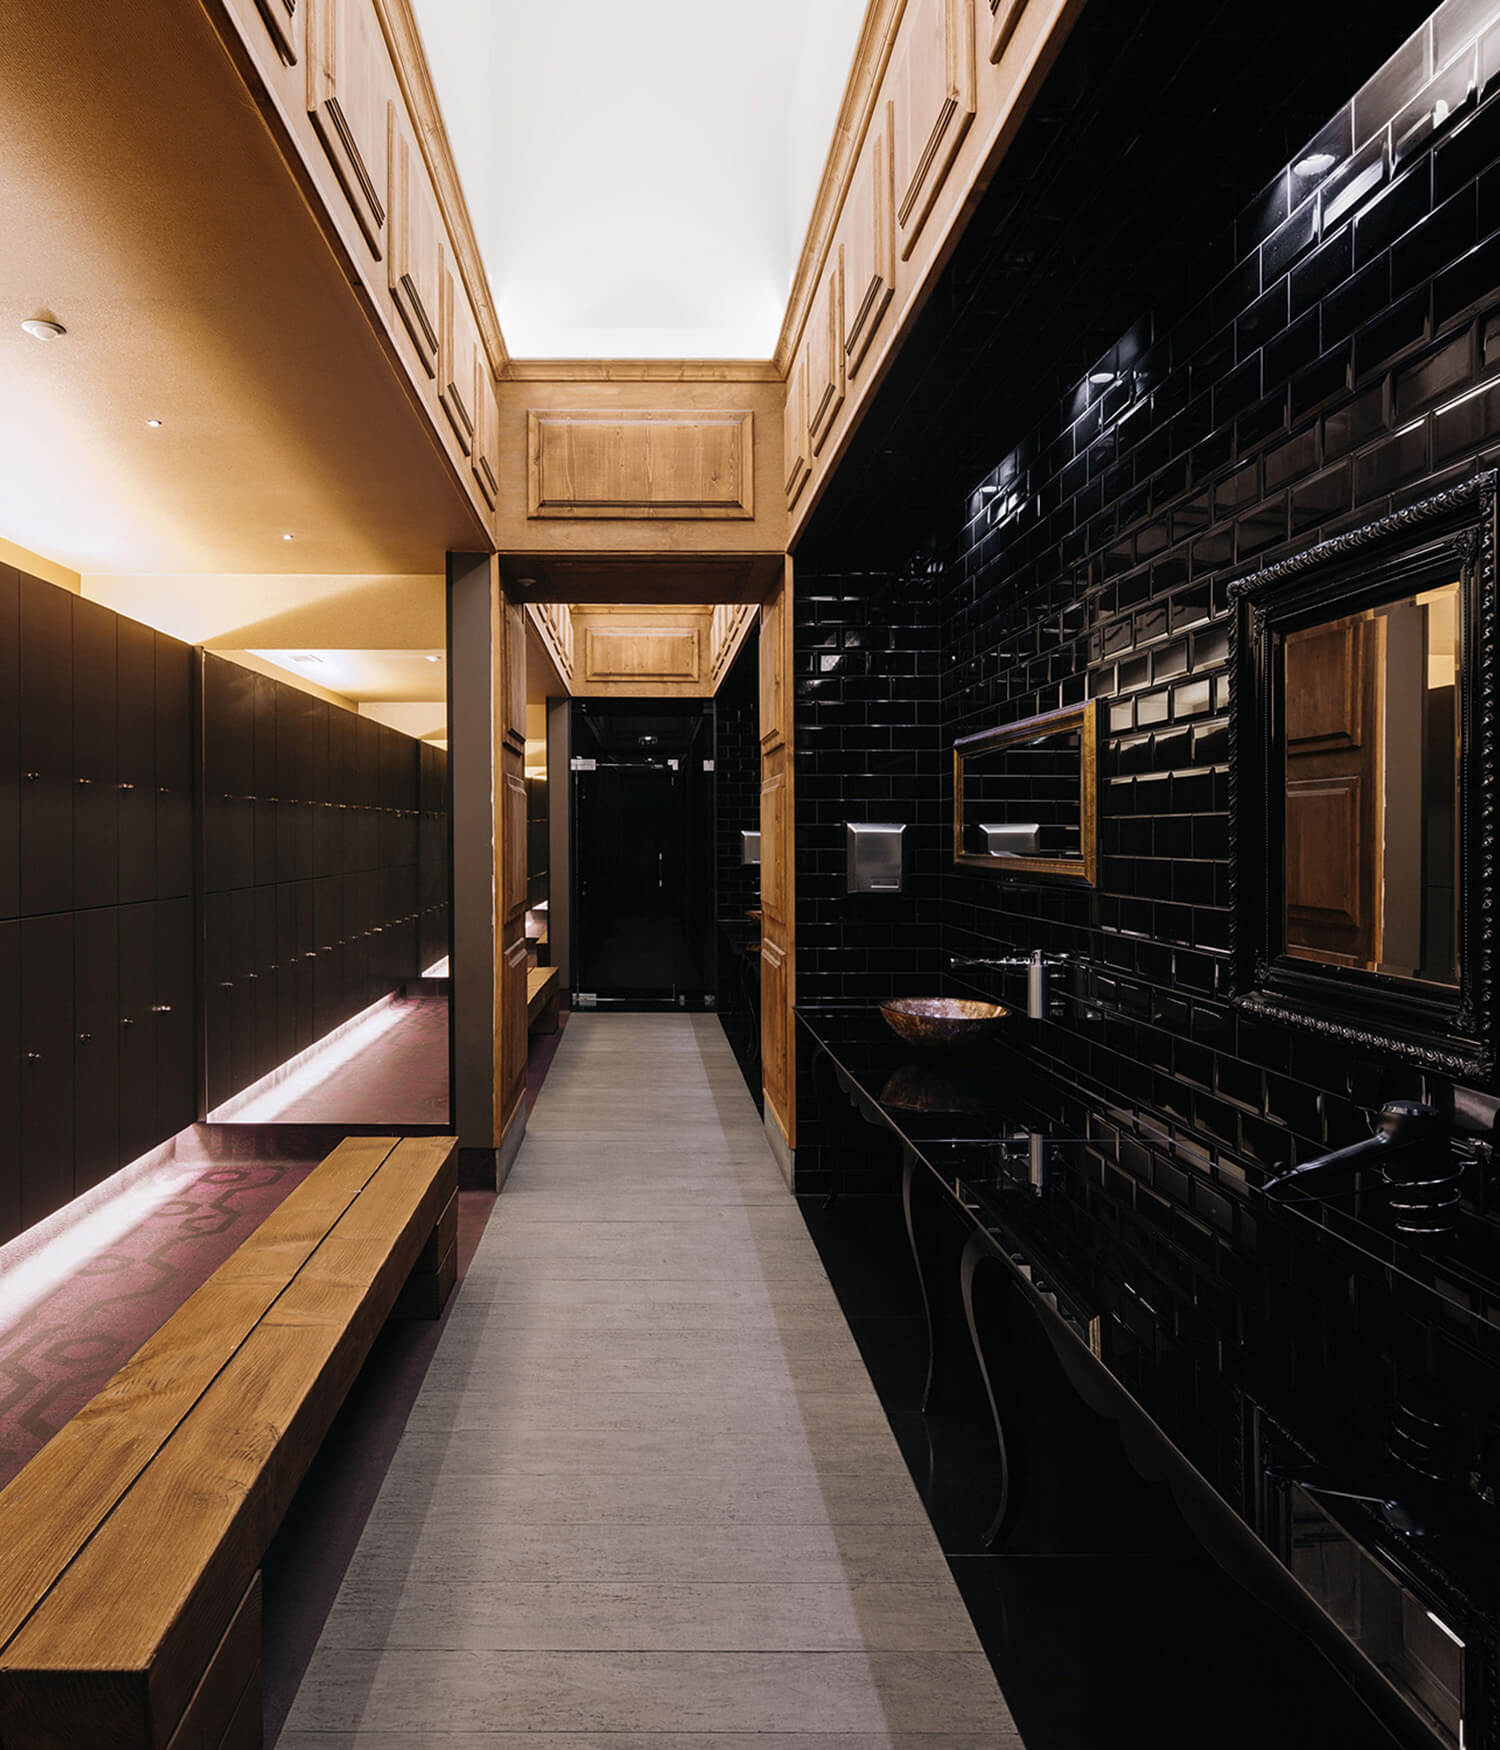 Perspective of the corridor contiguous to the lavatories and dryers, on the right, and to the dressing area of mirrored walls and backlit lockers, on the left.